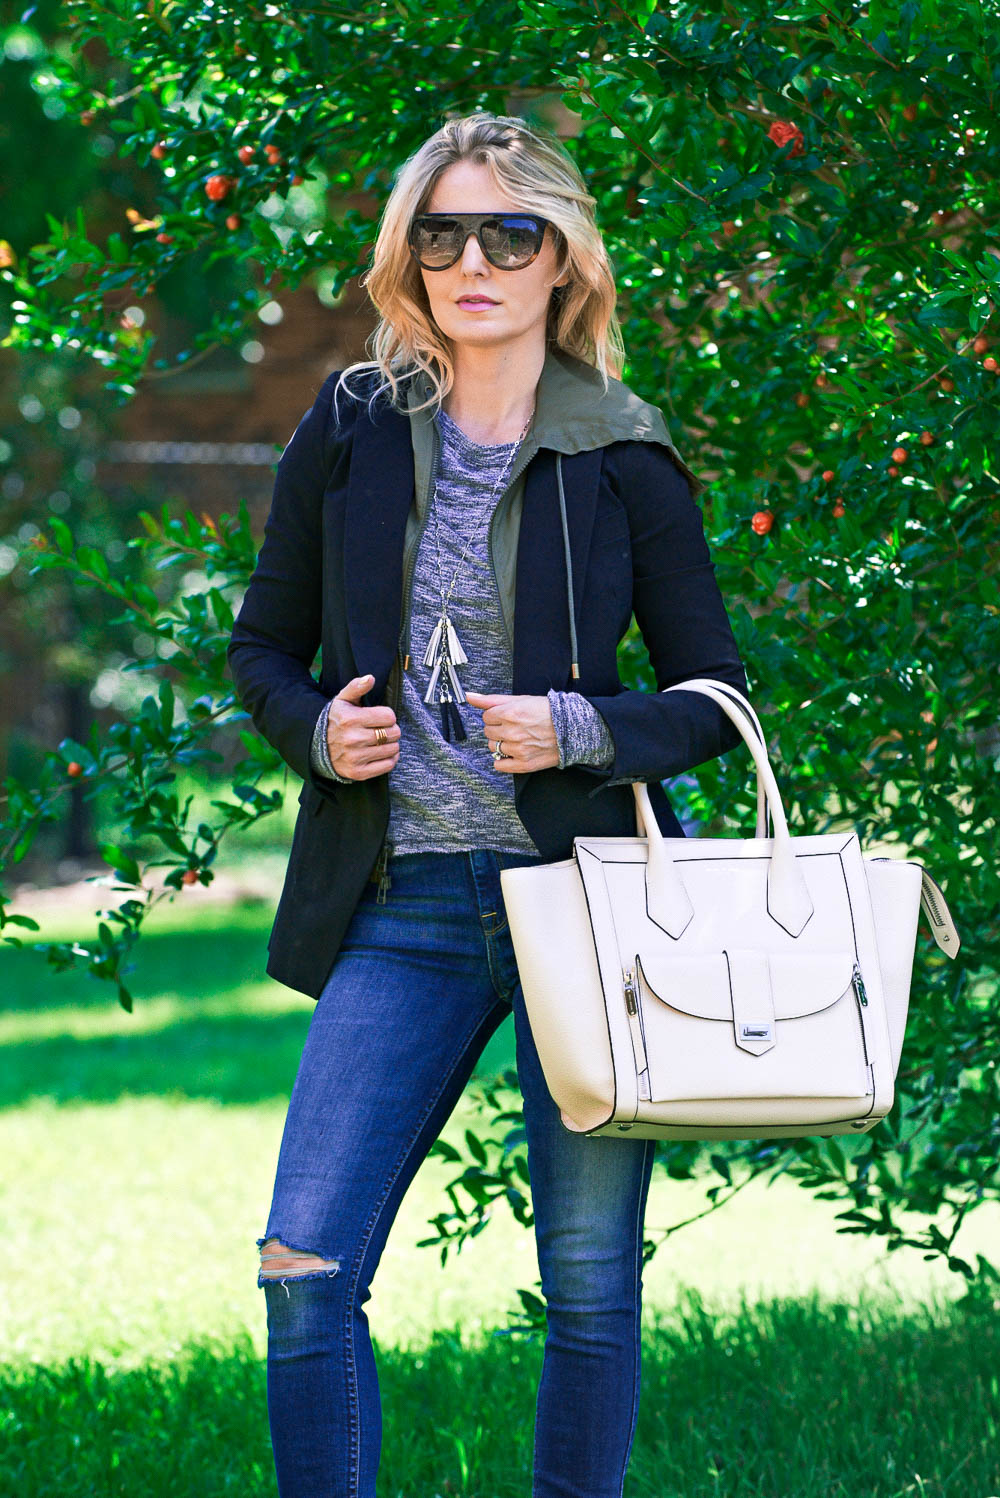 White bags, these white handbags, hand-picked by Erin Busbee, Fashion Blogger and YouTuber for busy women over 40, are from Henri Bendel. They are versatile, neutral...perfect everyday handbags!